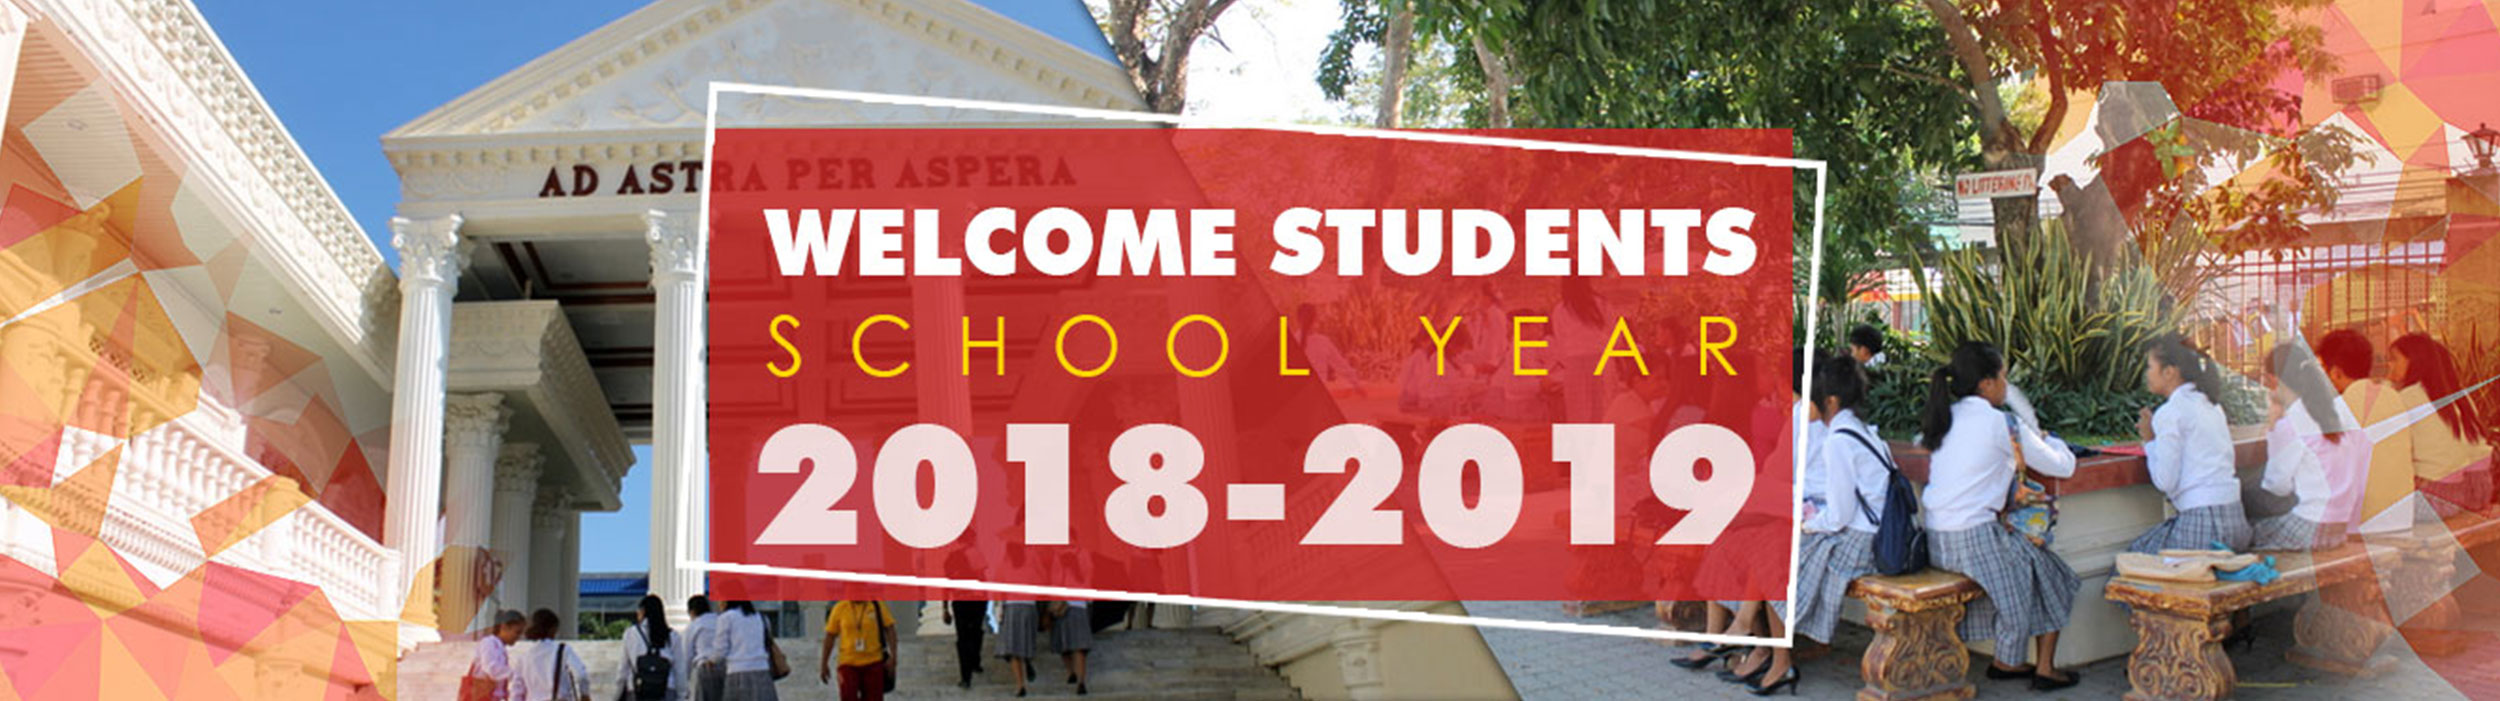 banner_welcome2018-2019